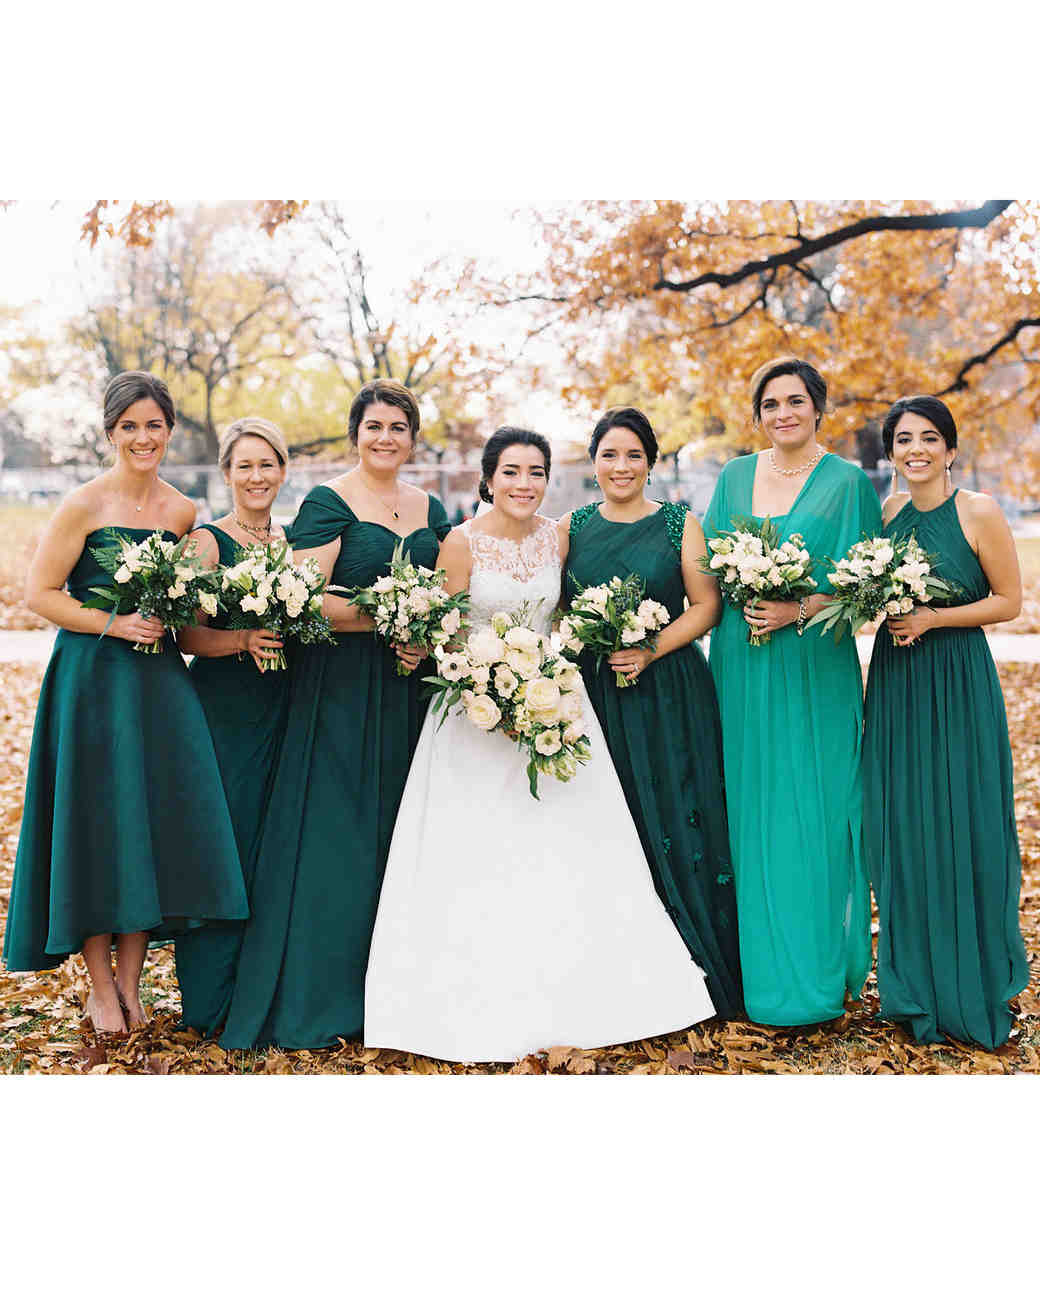 celina rob wedding virginia bridesmaids